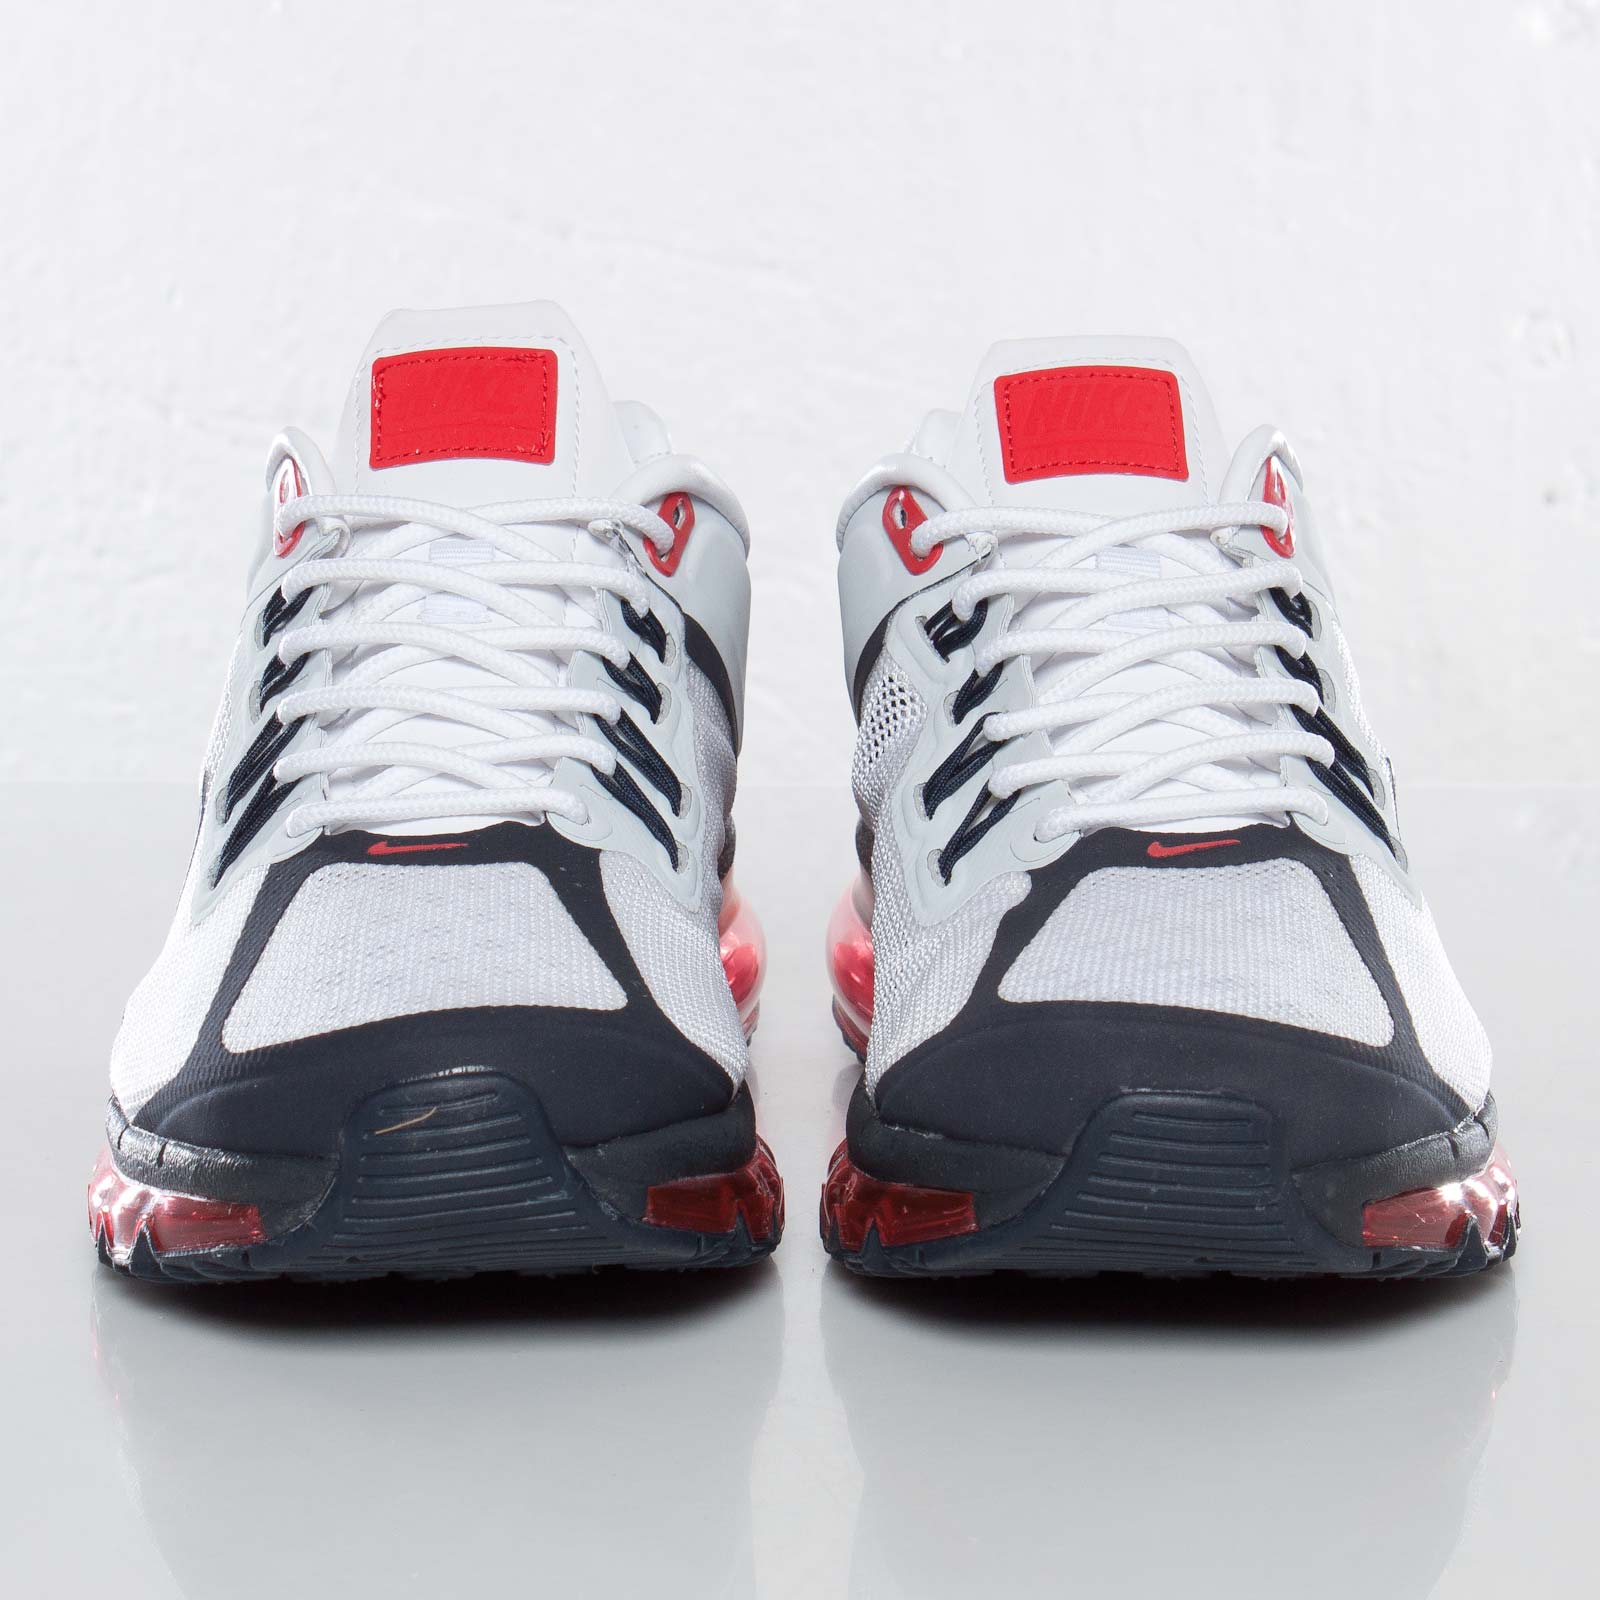 093af0ca0a8f ... where can i buy nike air max 2013 ext nike air max 2013 ext 9c837 26df8